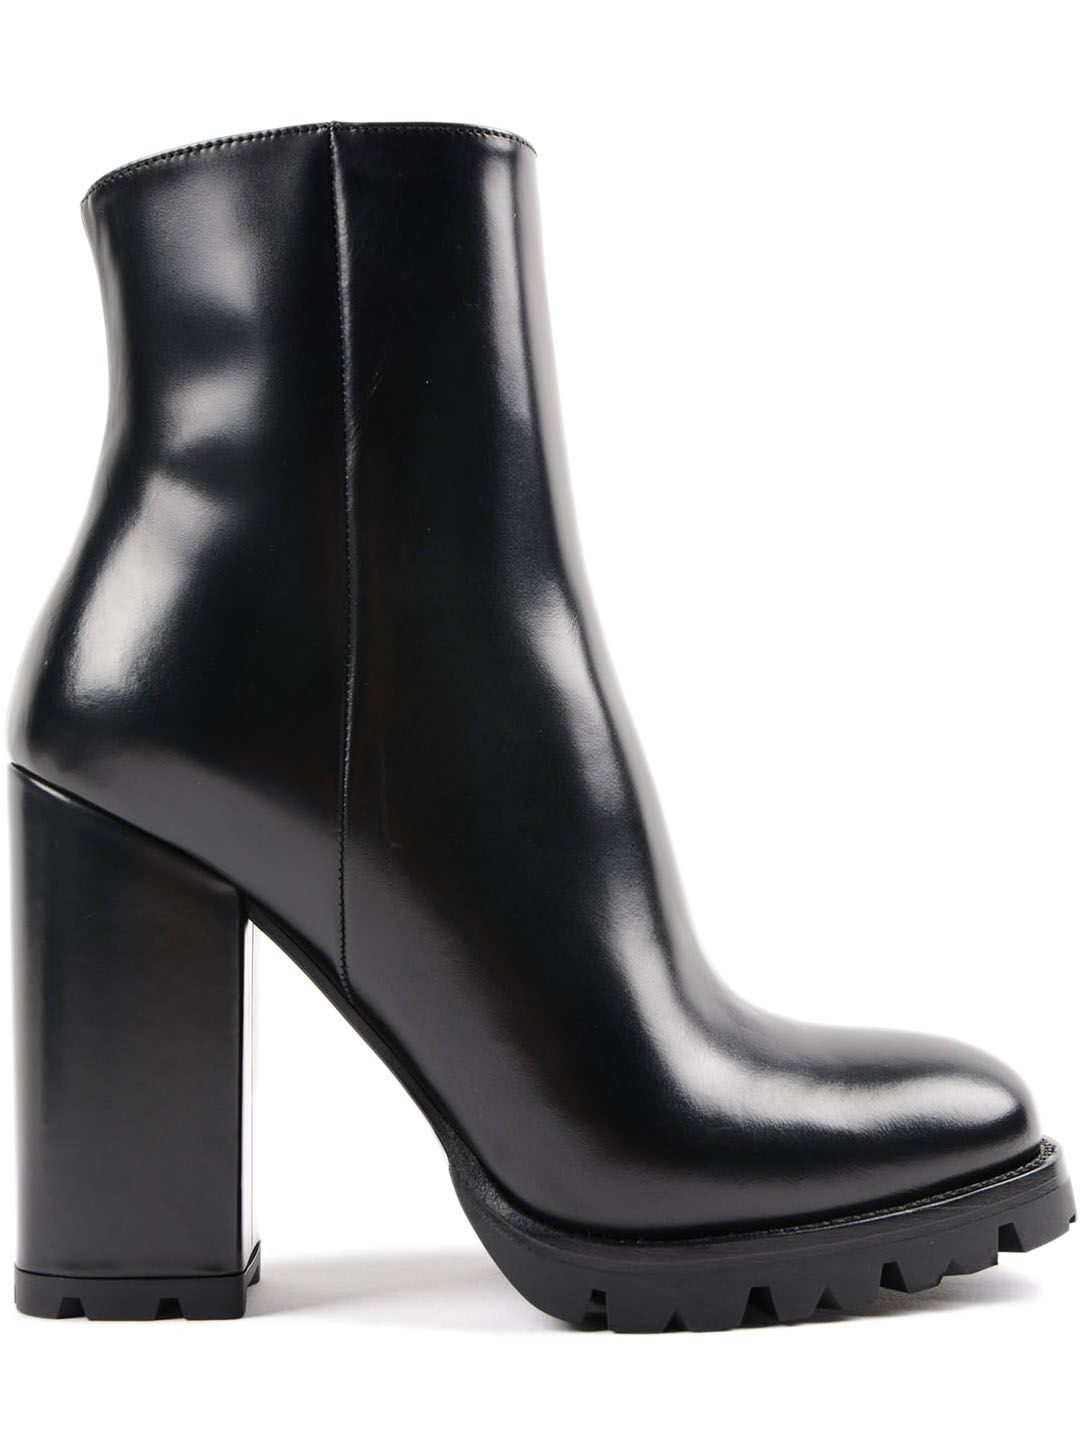 Prada Vitello Old Bootie 105mm